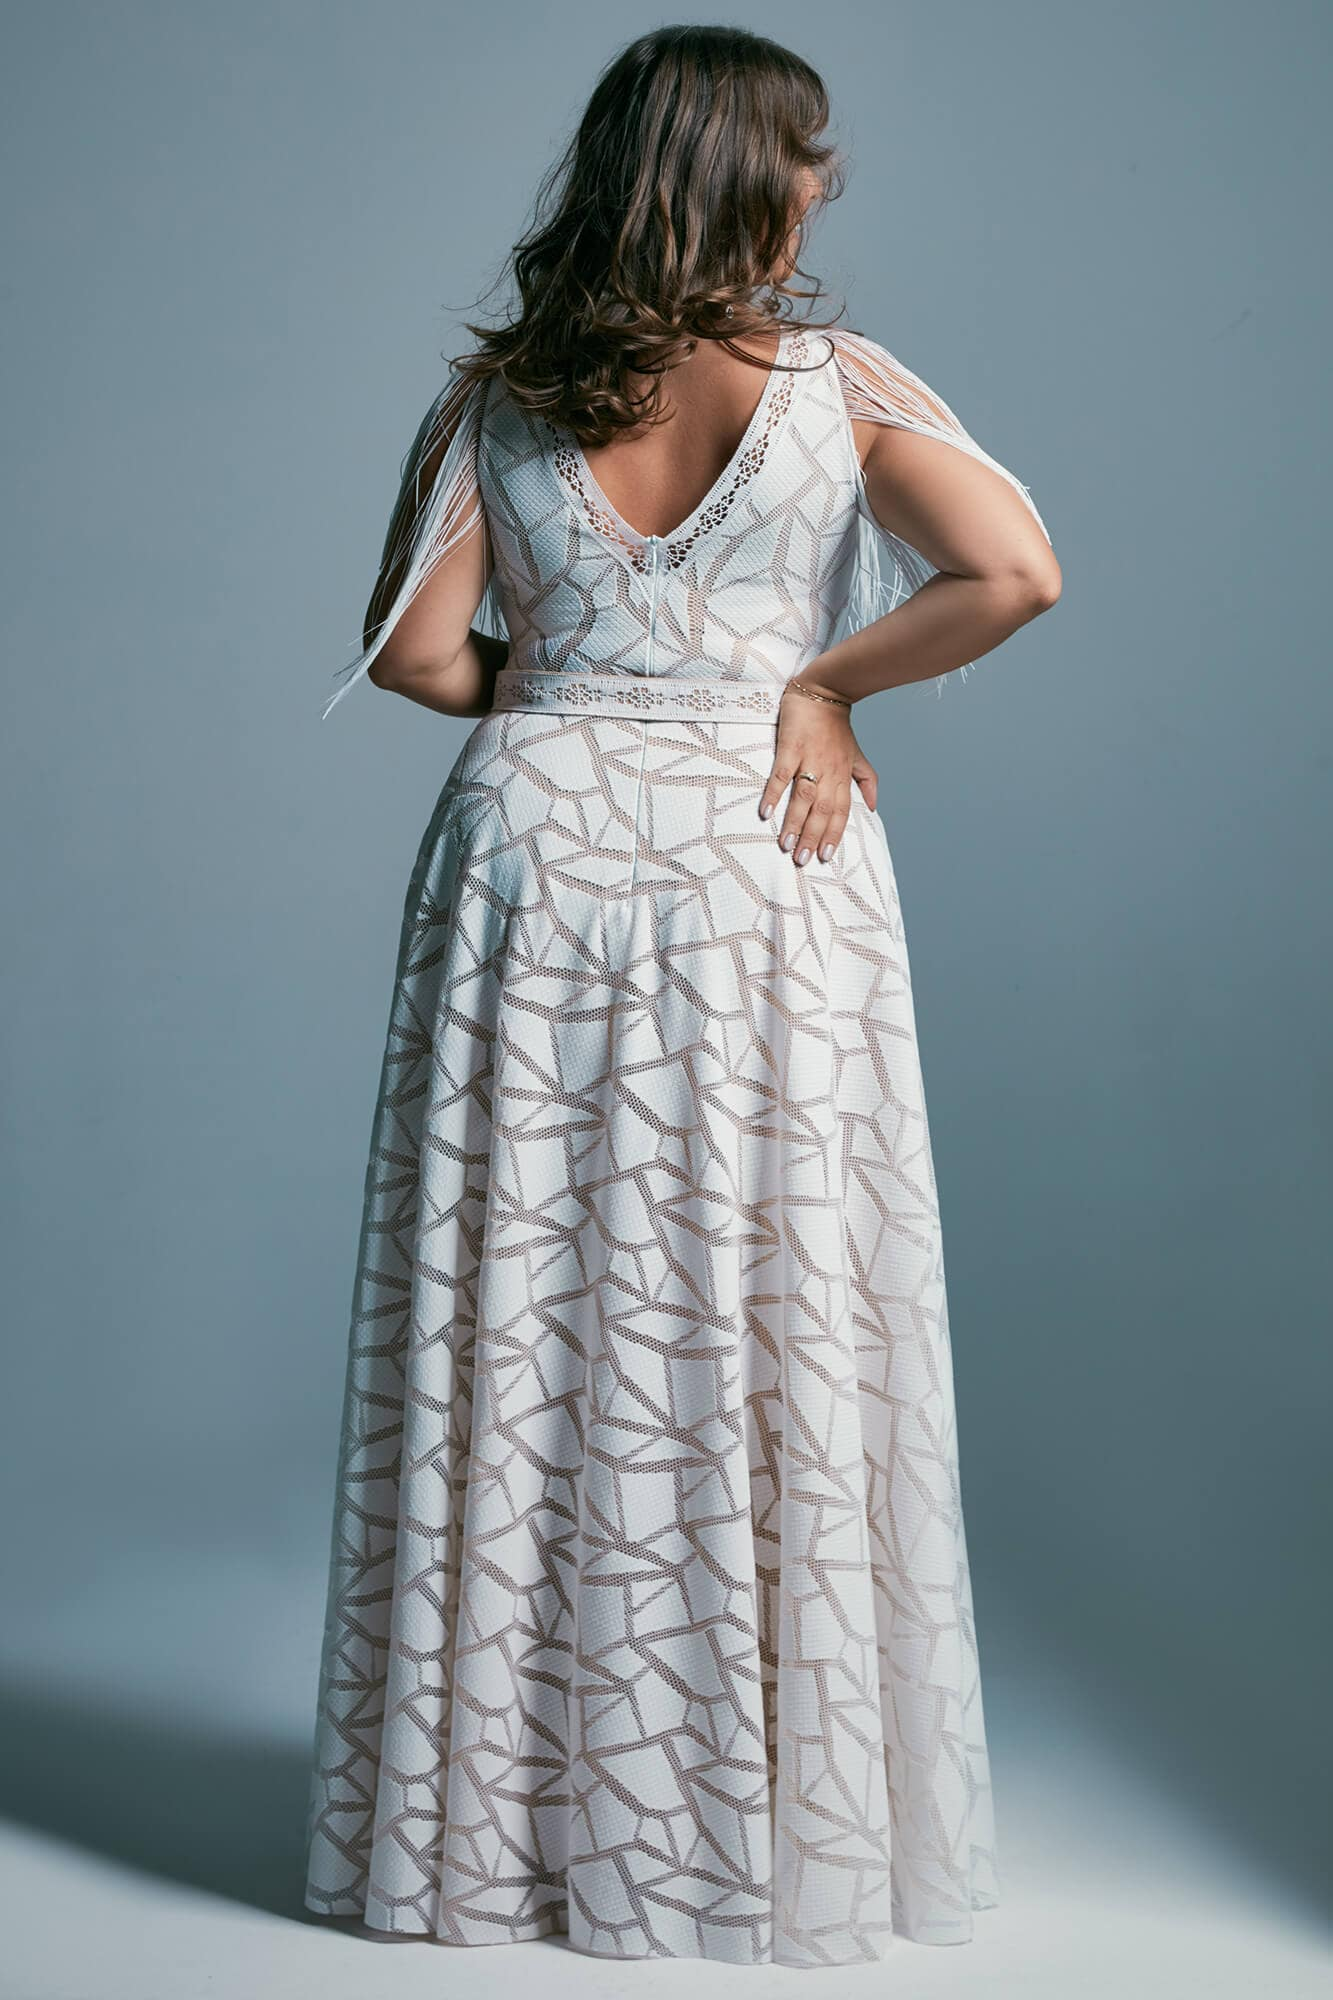 Plus size wedding dress in African pattern with elastic lace Santorini 3 plus size